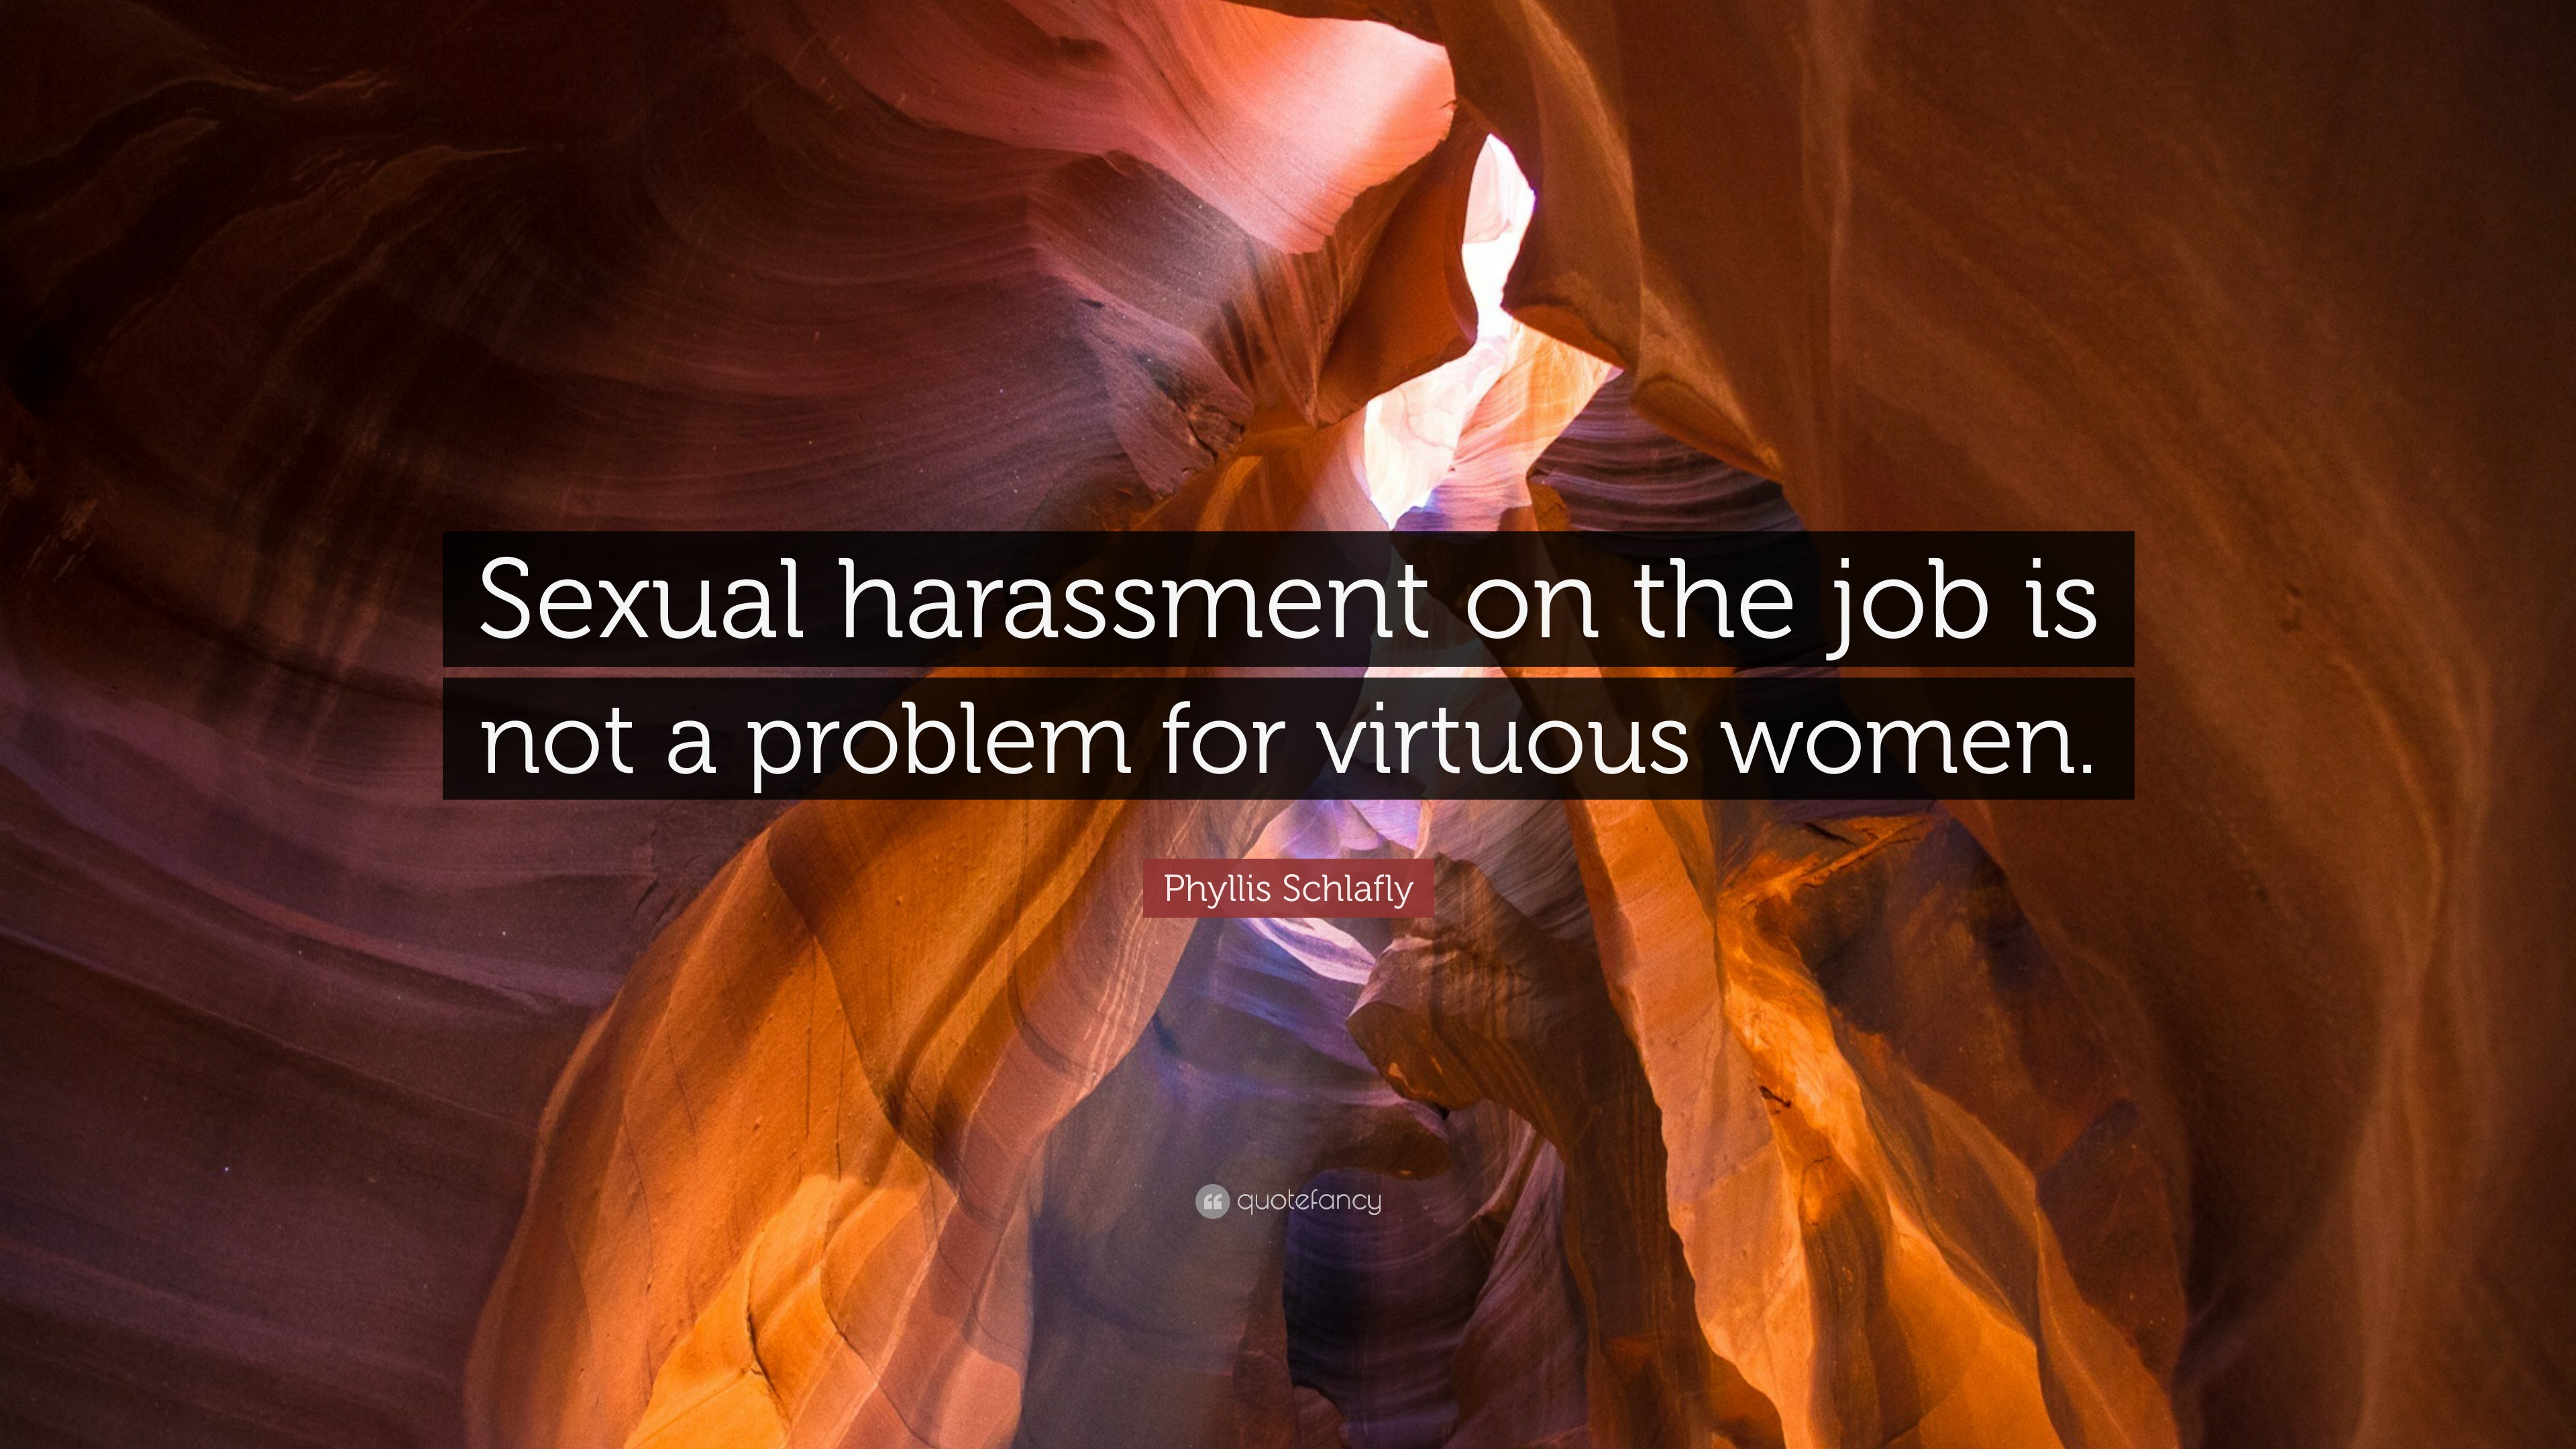 harassment not problem a is Sexual